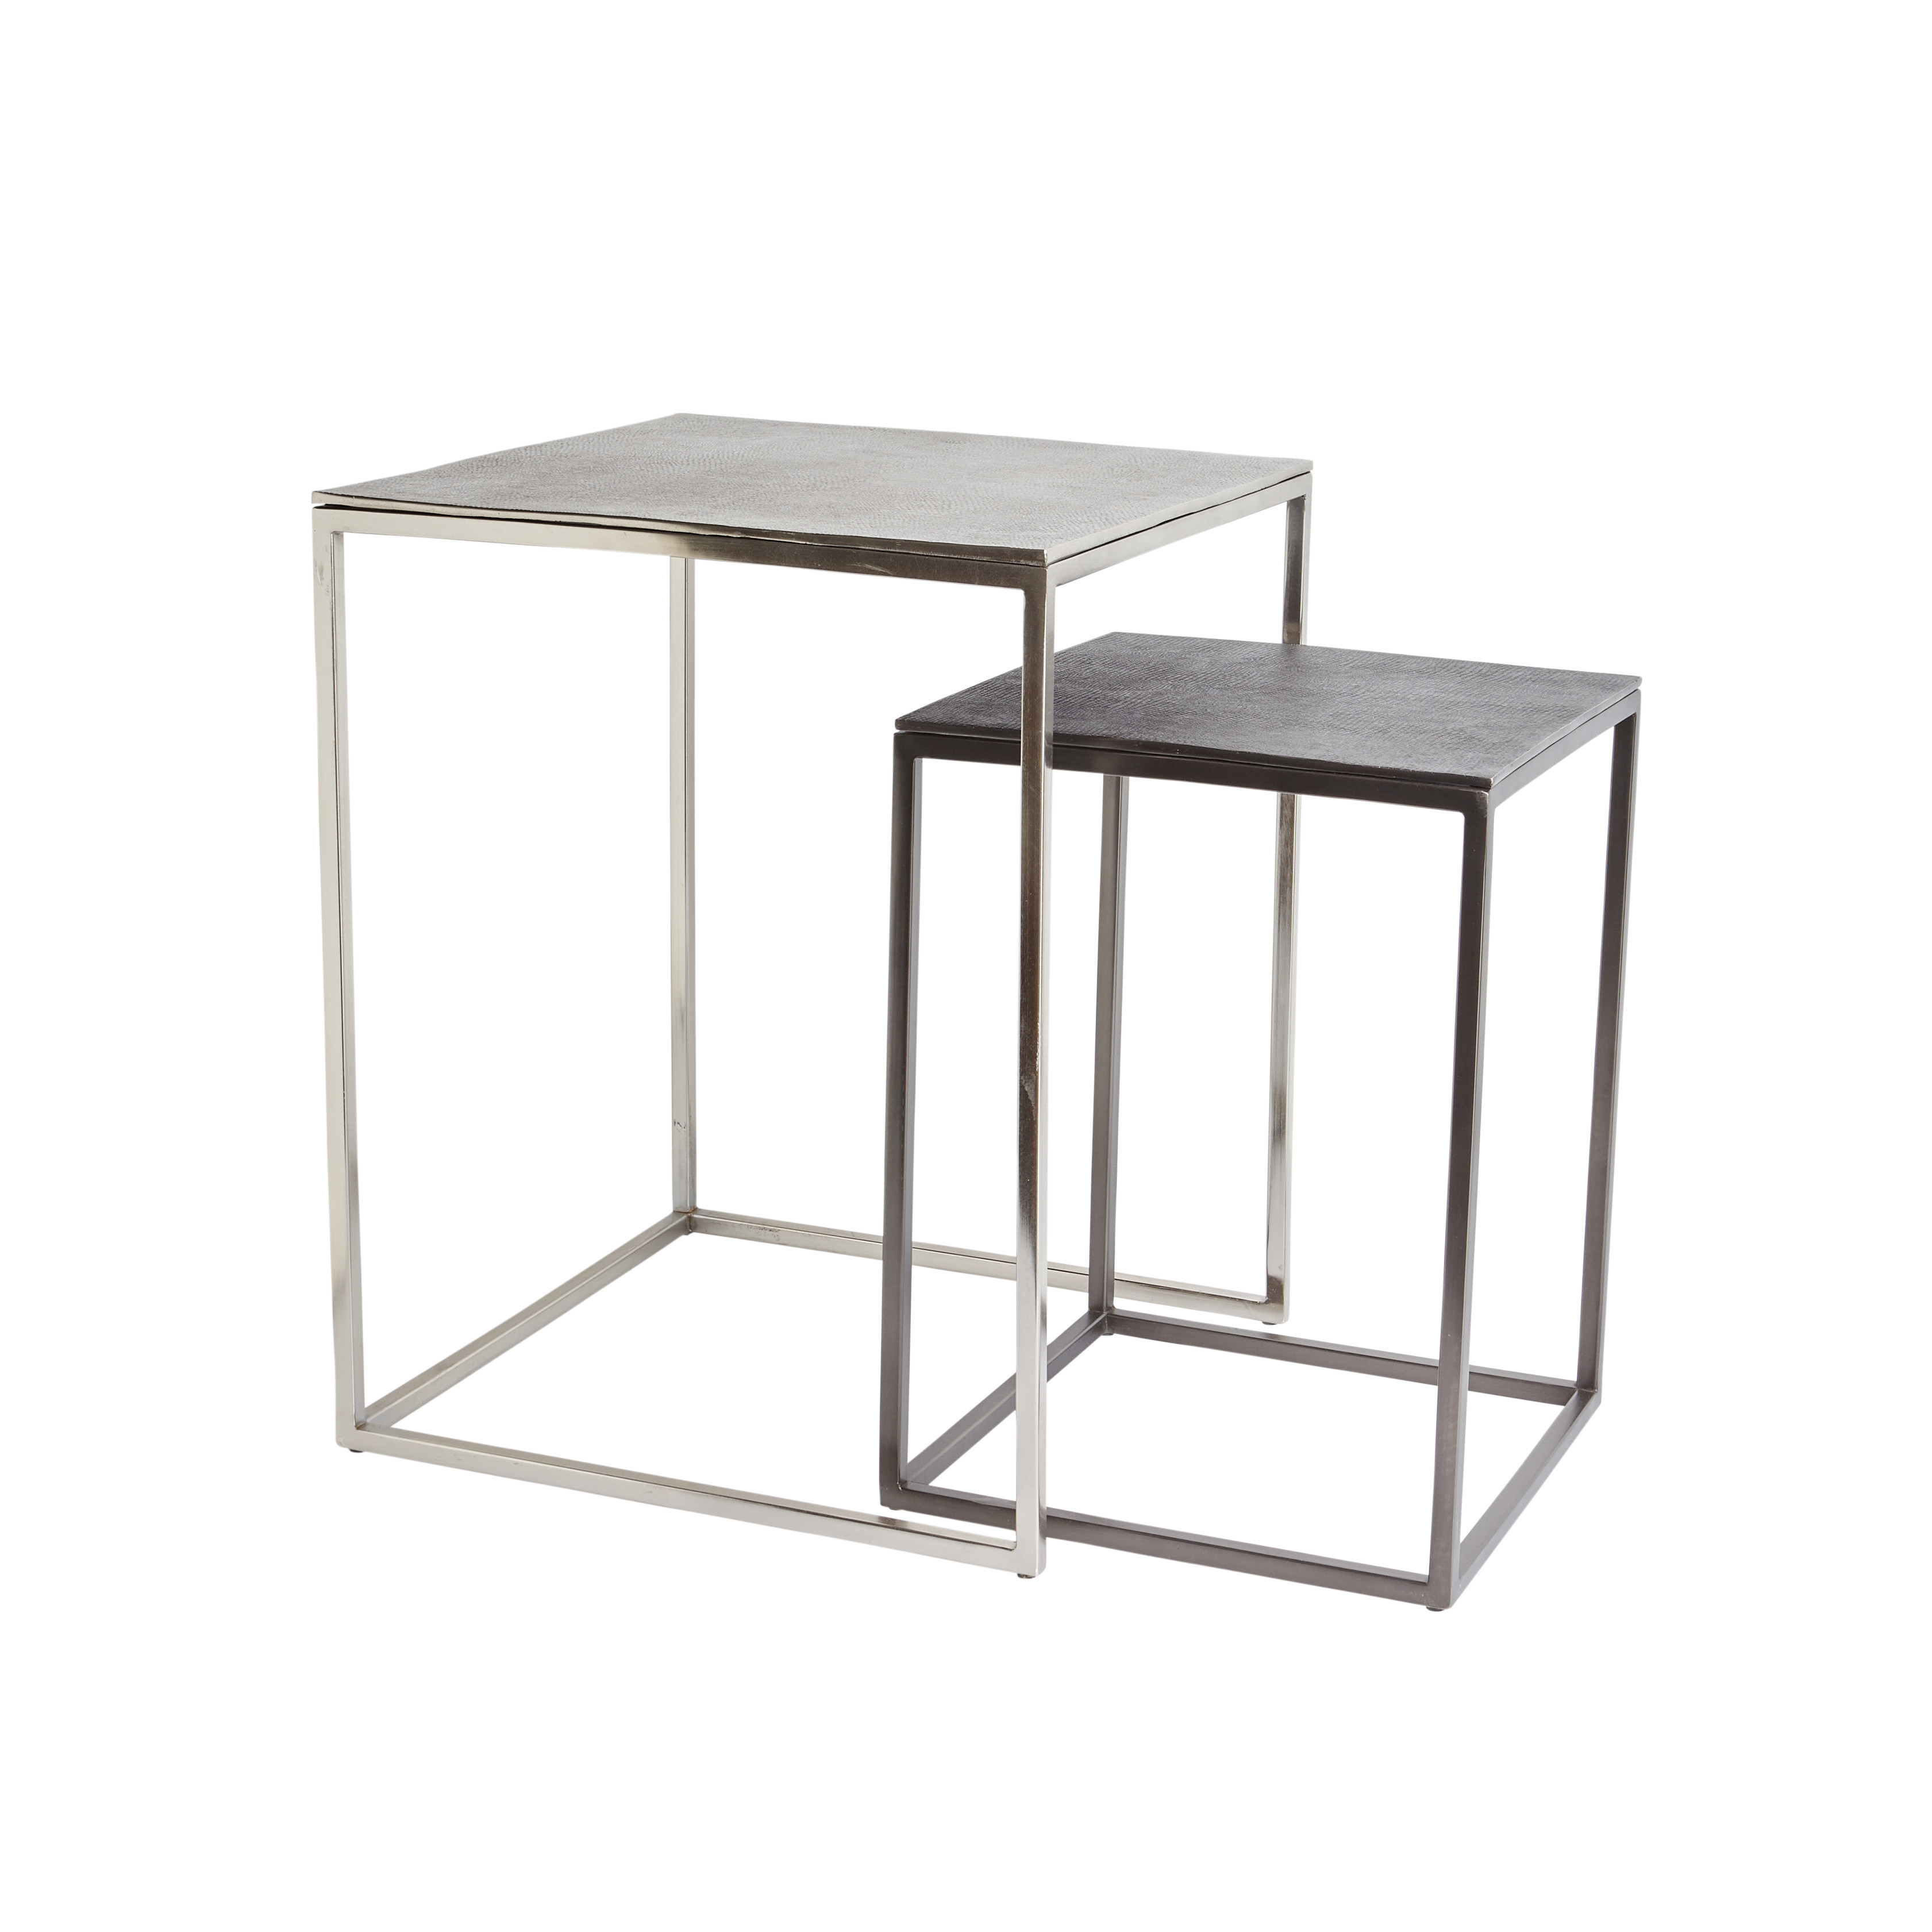 Coffee table in metallo cromato Snake, Grigio scuro, large image number 2